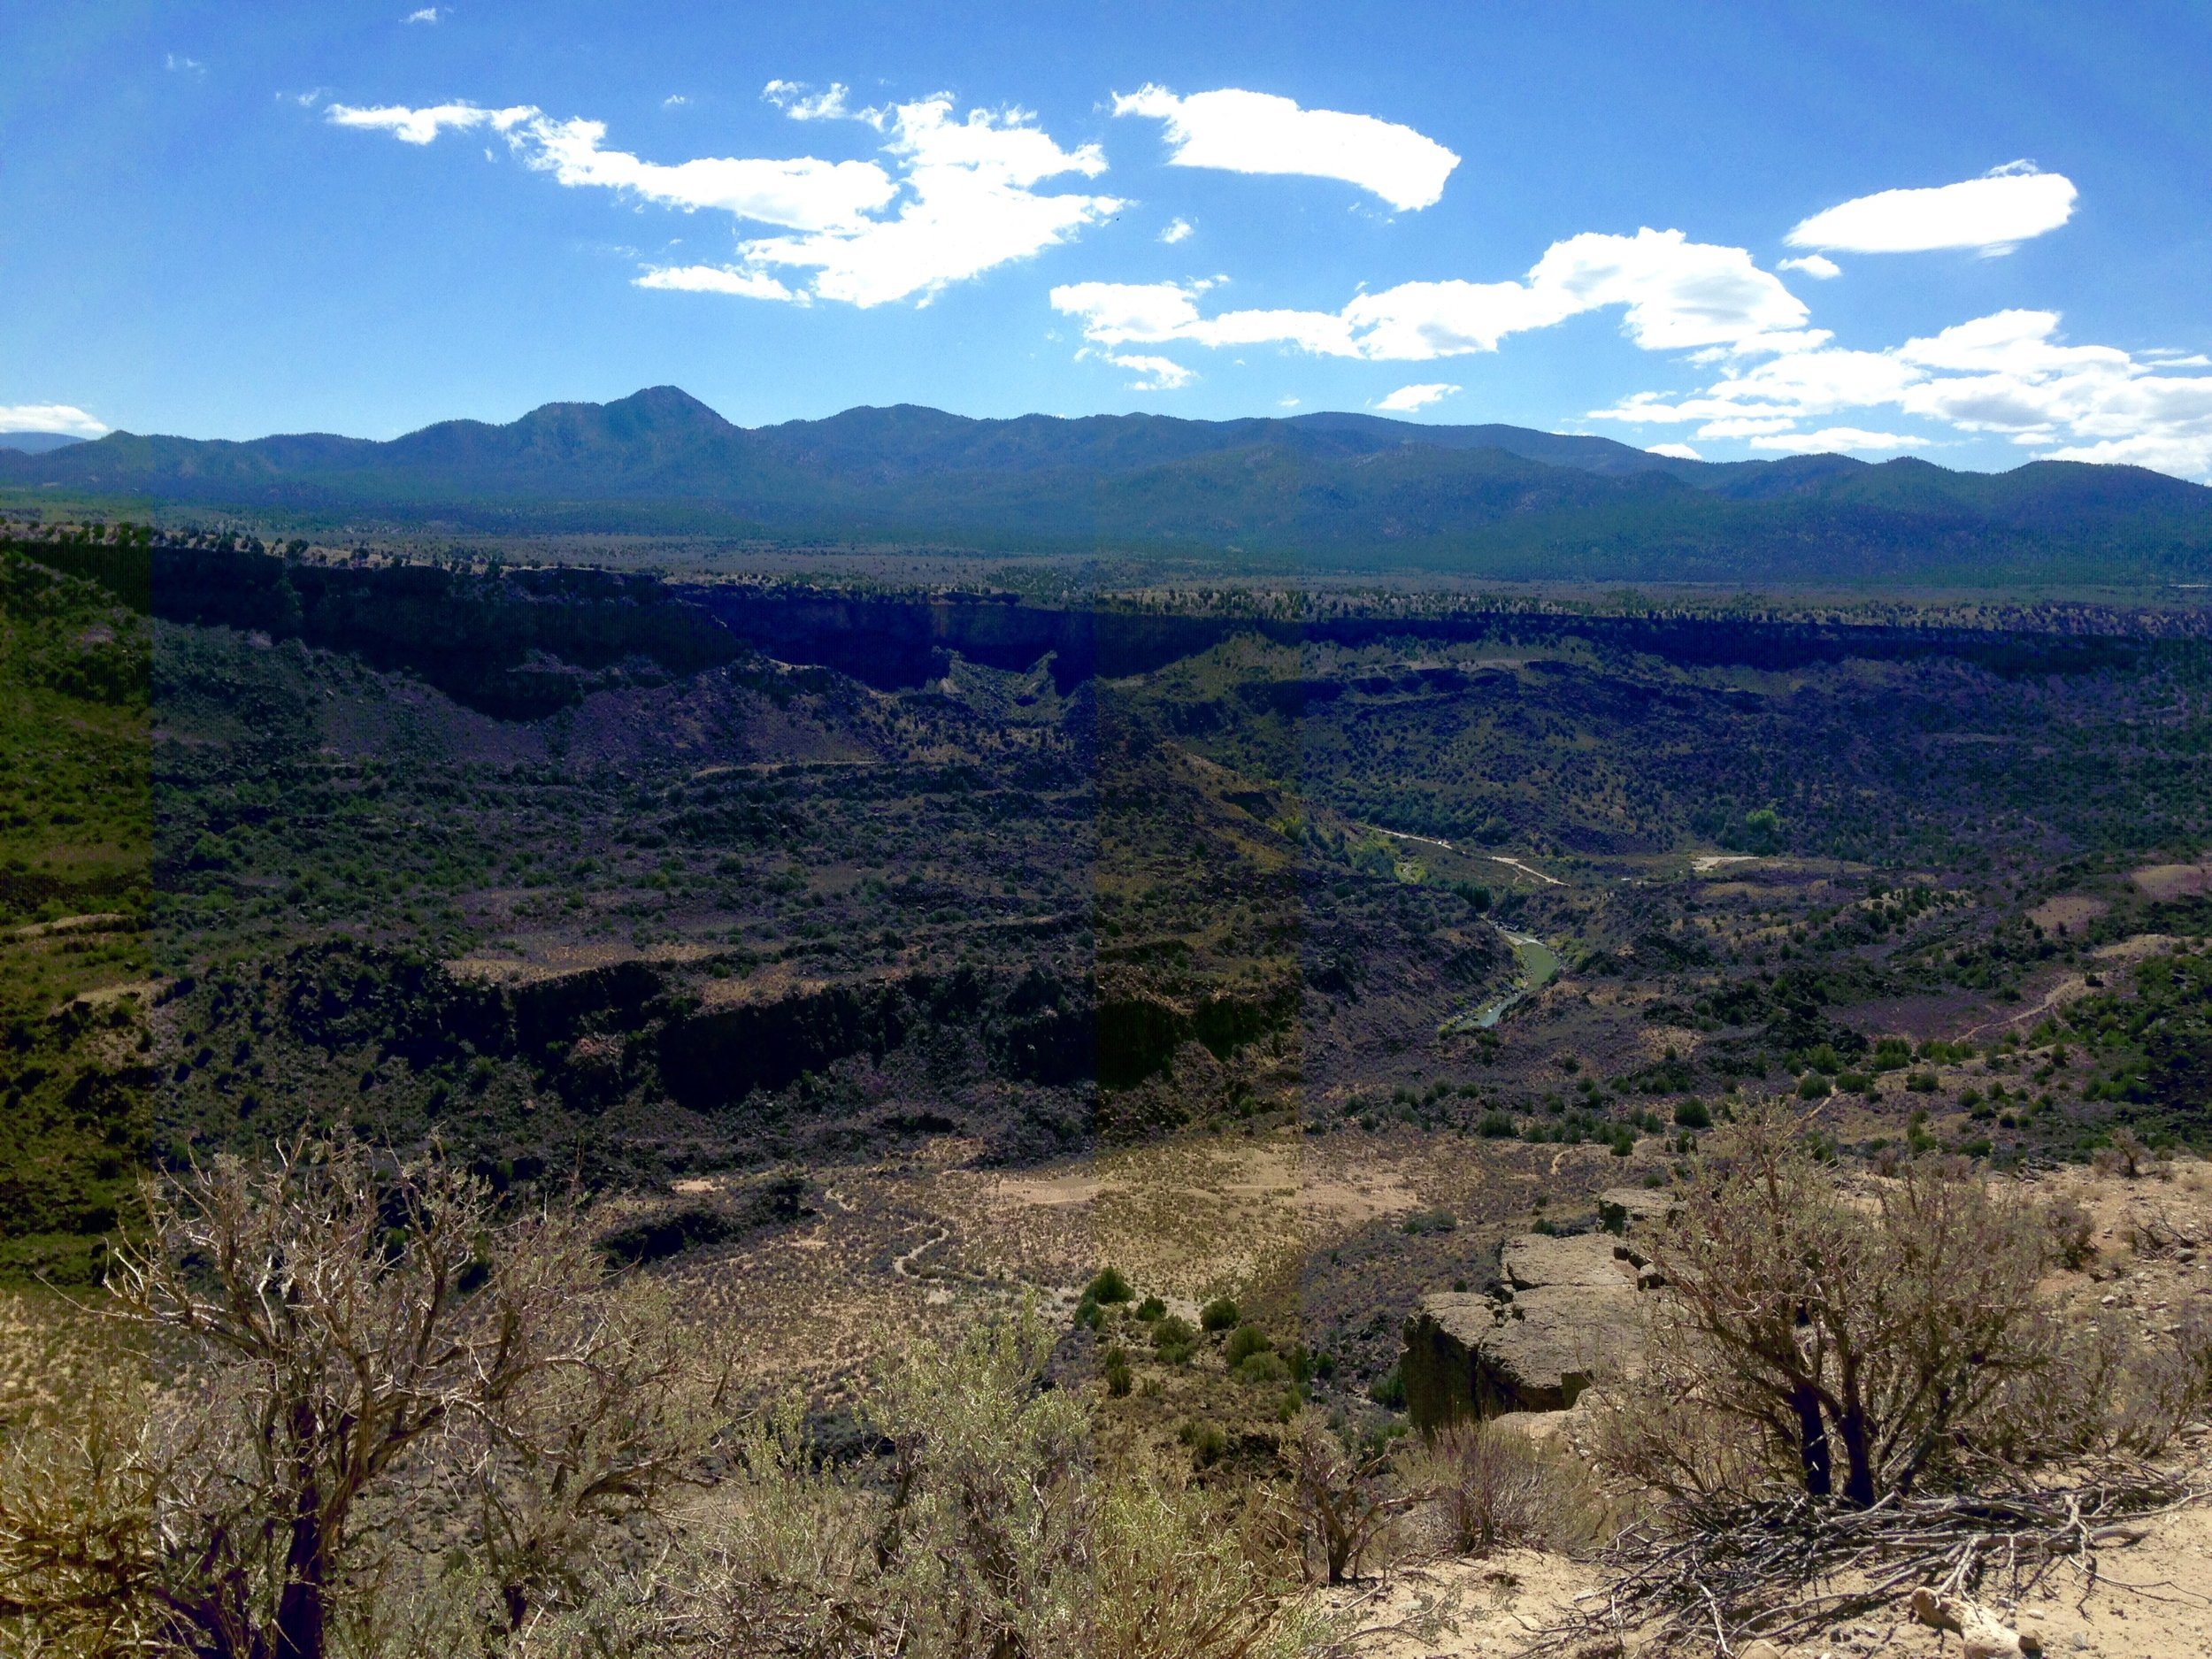 Listening to the song coming out of the earth's womb, Taos Gorge, New Mexico